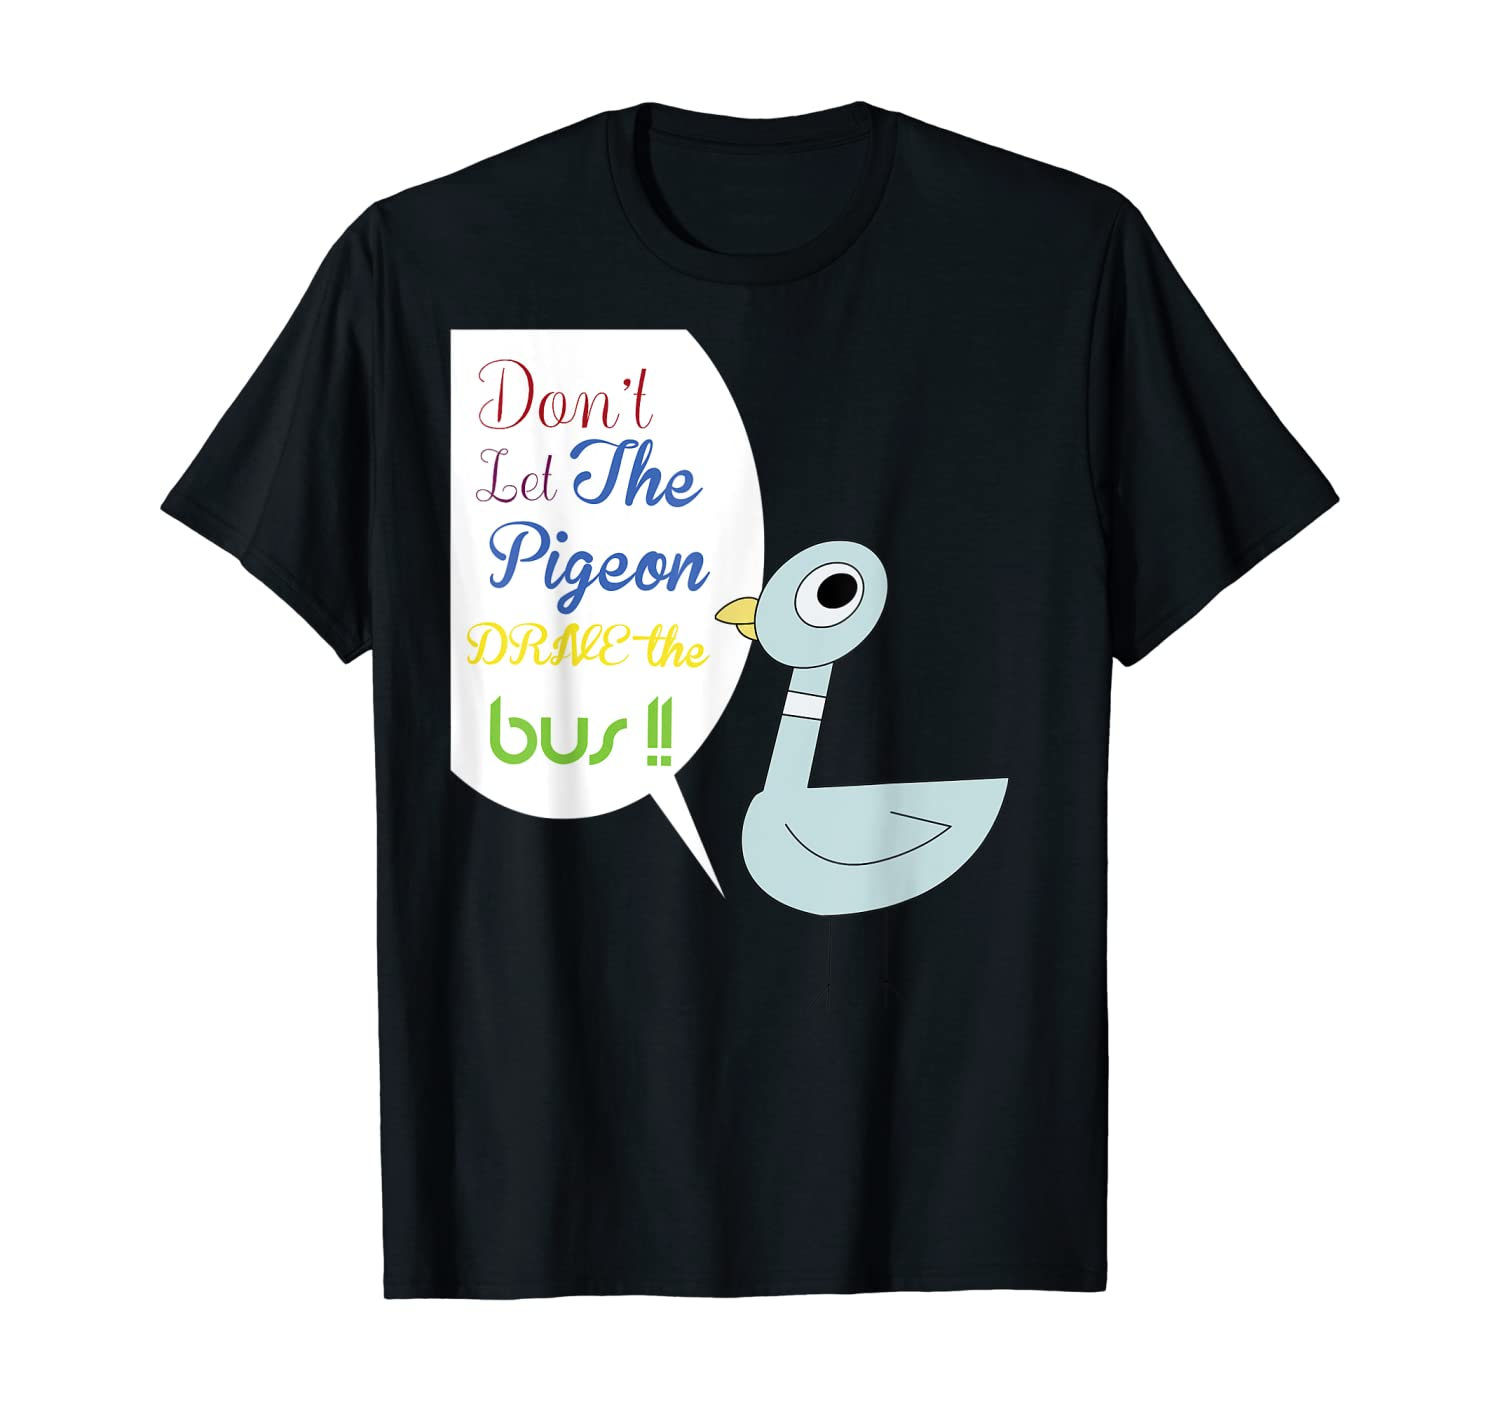 Don't Let The Pigeon Drive the Bus T-Shirt